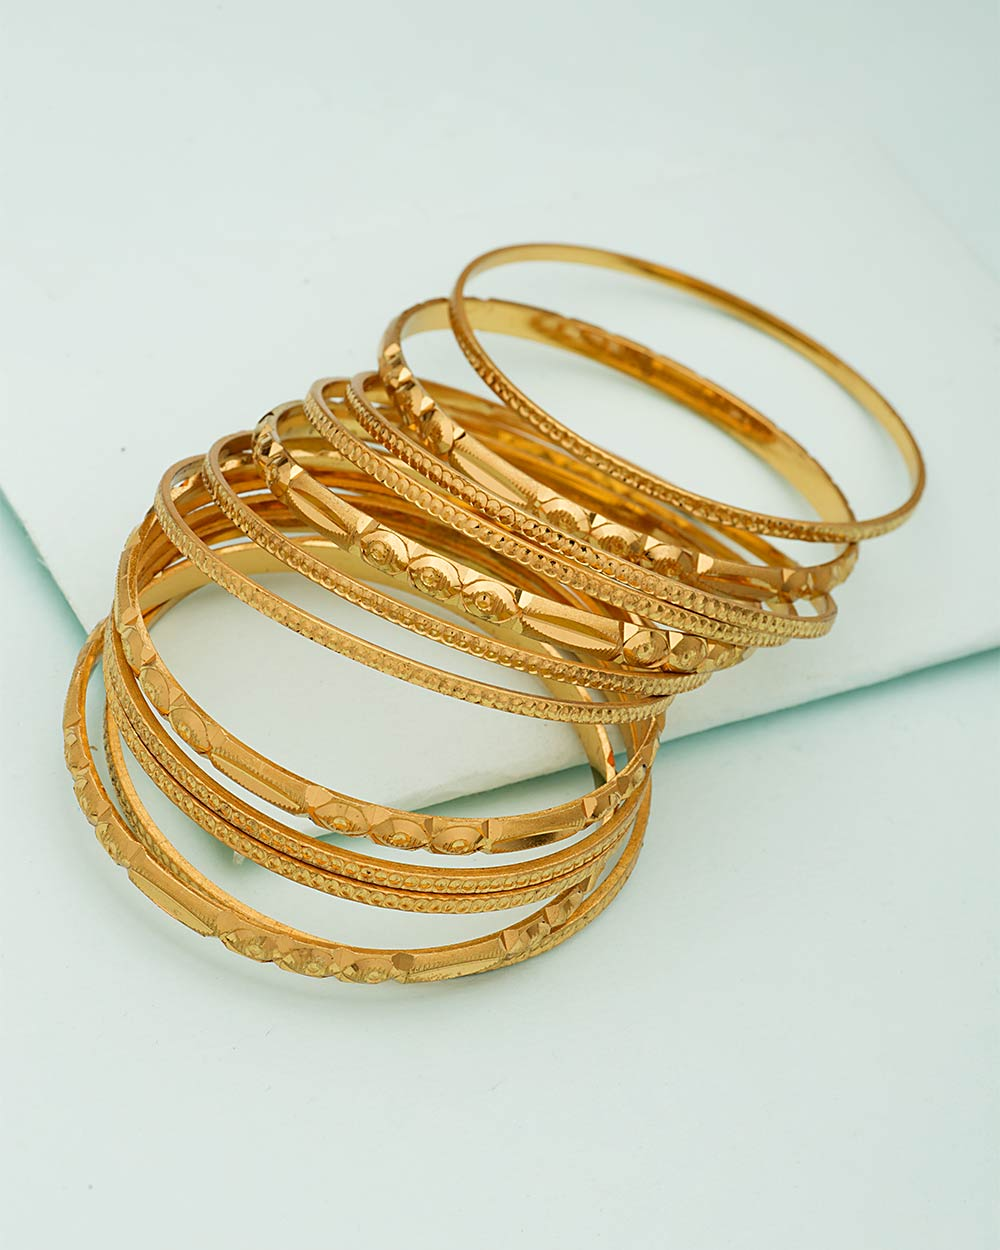 Gold Plated Bangles Set of 12 | Buy Designer & Fashion Bracelets ...